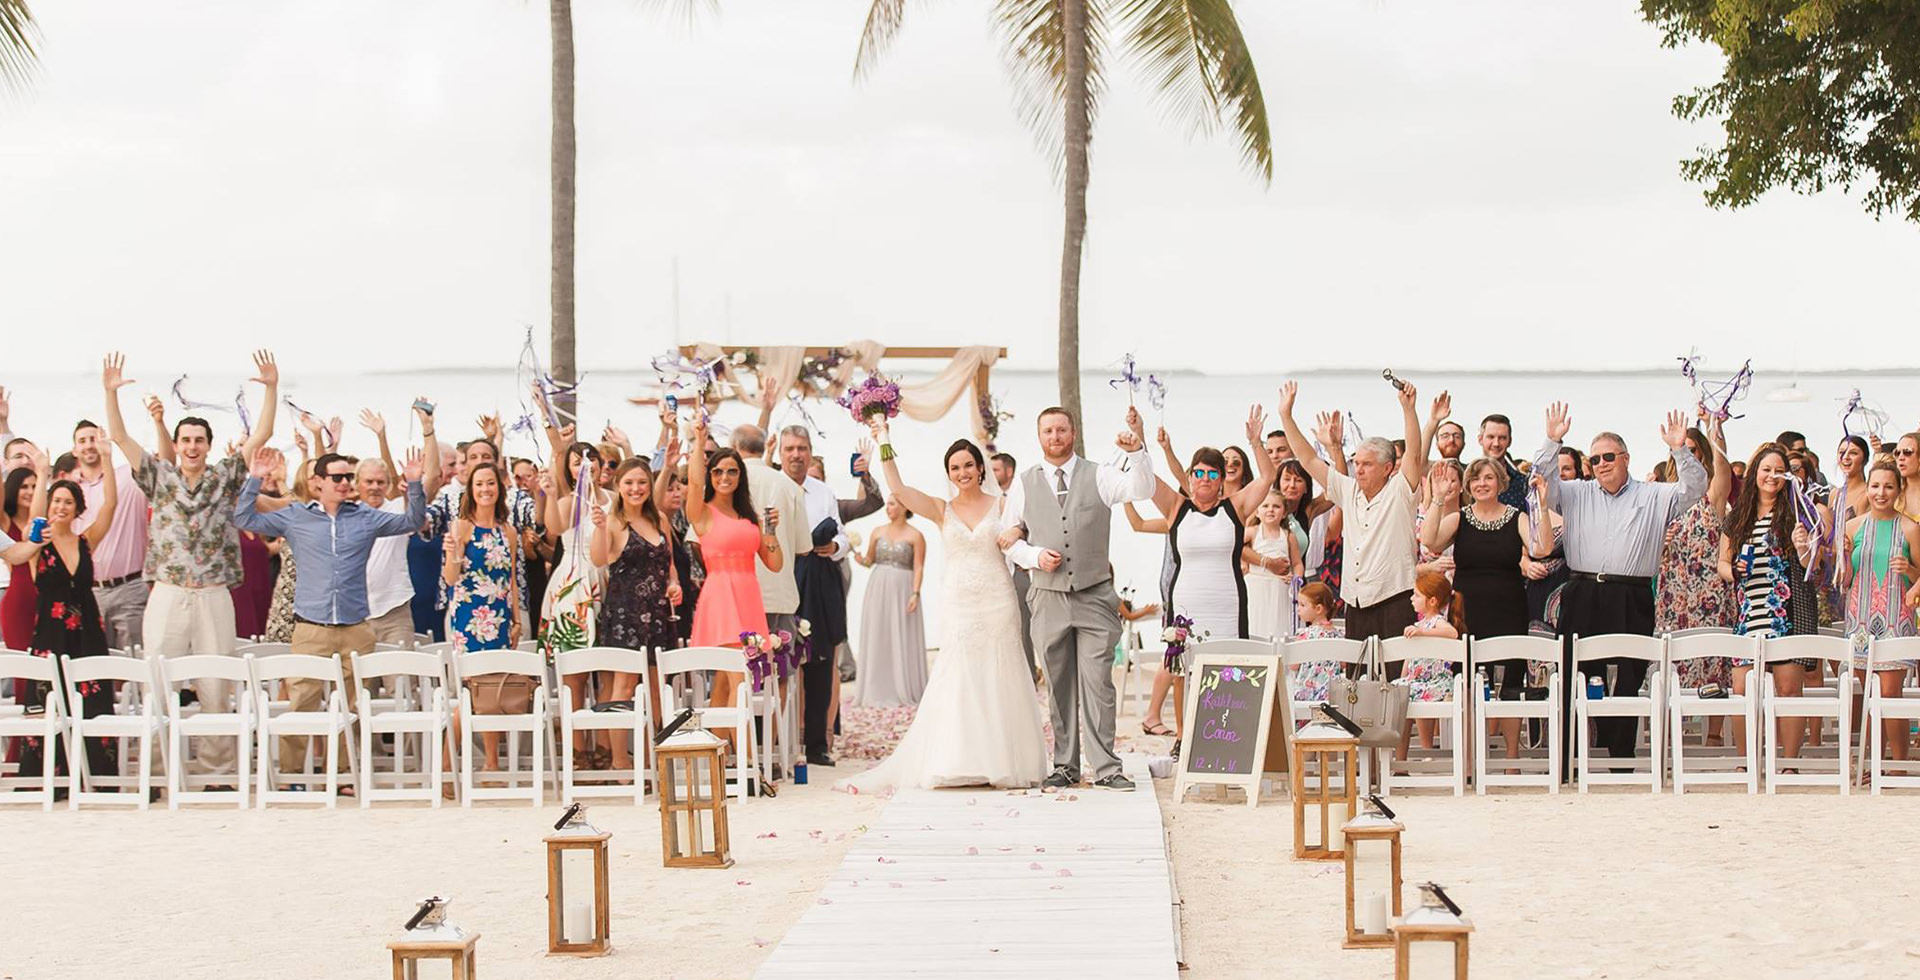 Outdoor Wedding Venues In Florida Up To 150 Guest Pricing O Key Largo Lighthouse Beach Weddings